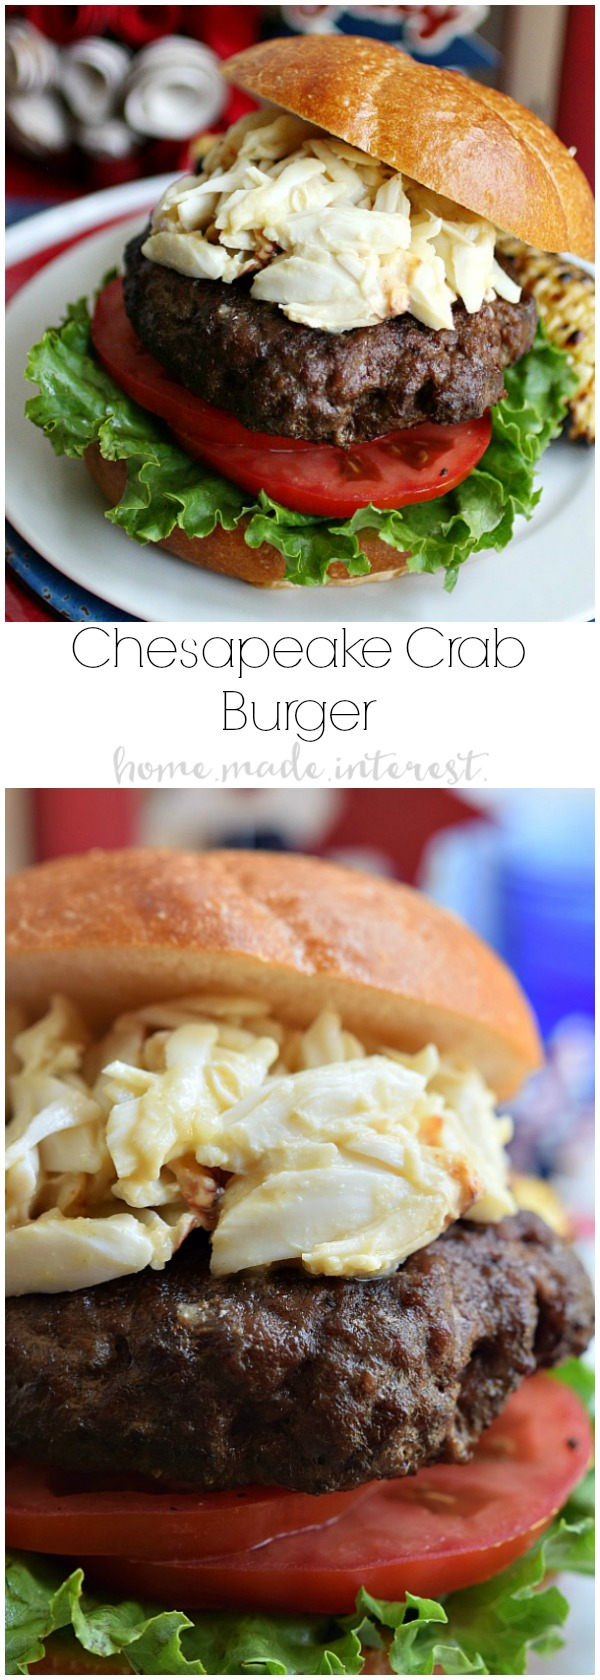 Chesapeake-Crab-Burger